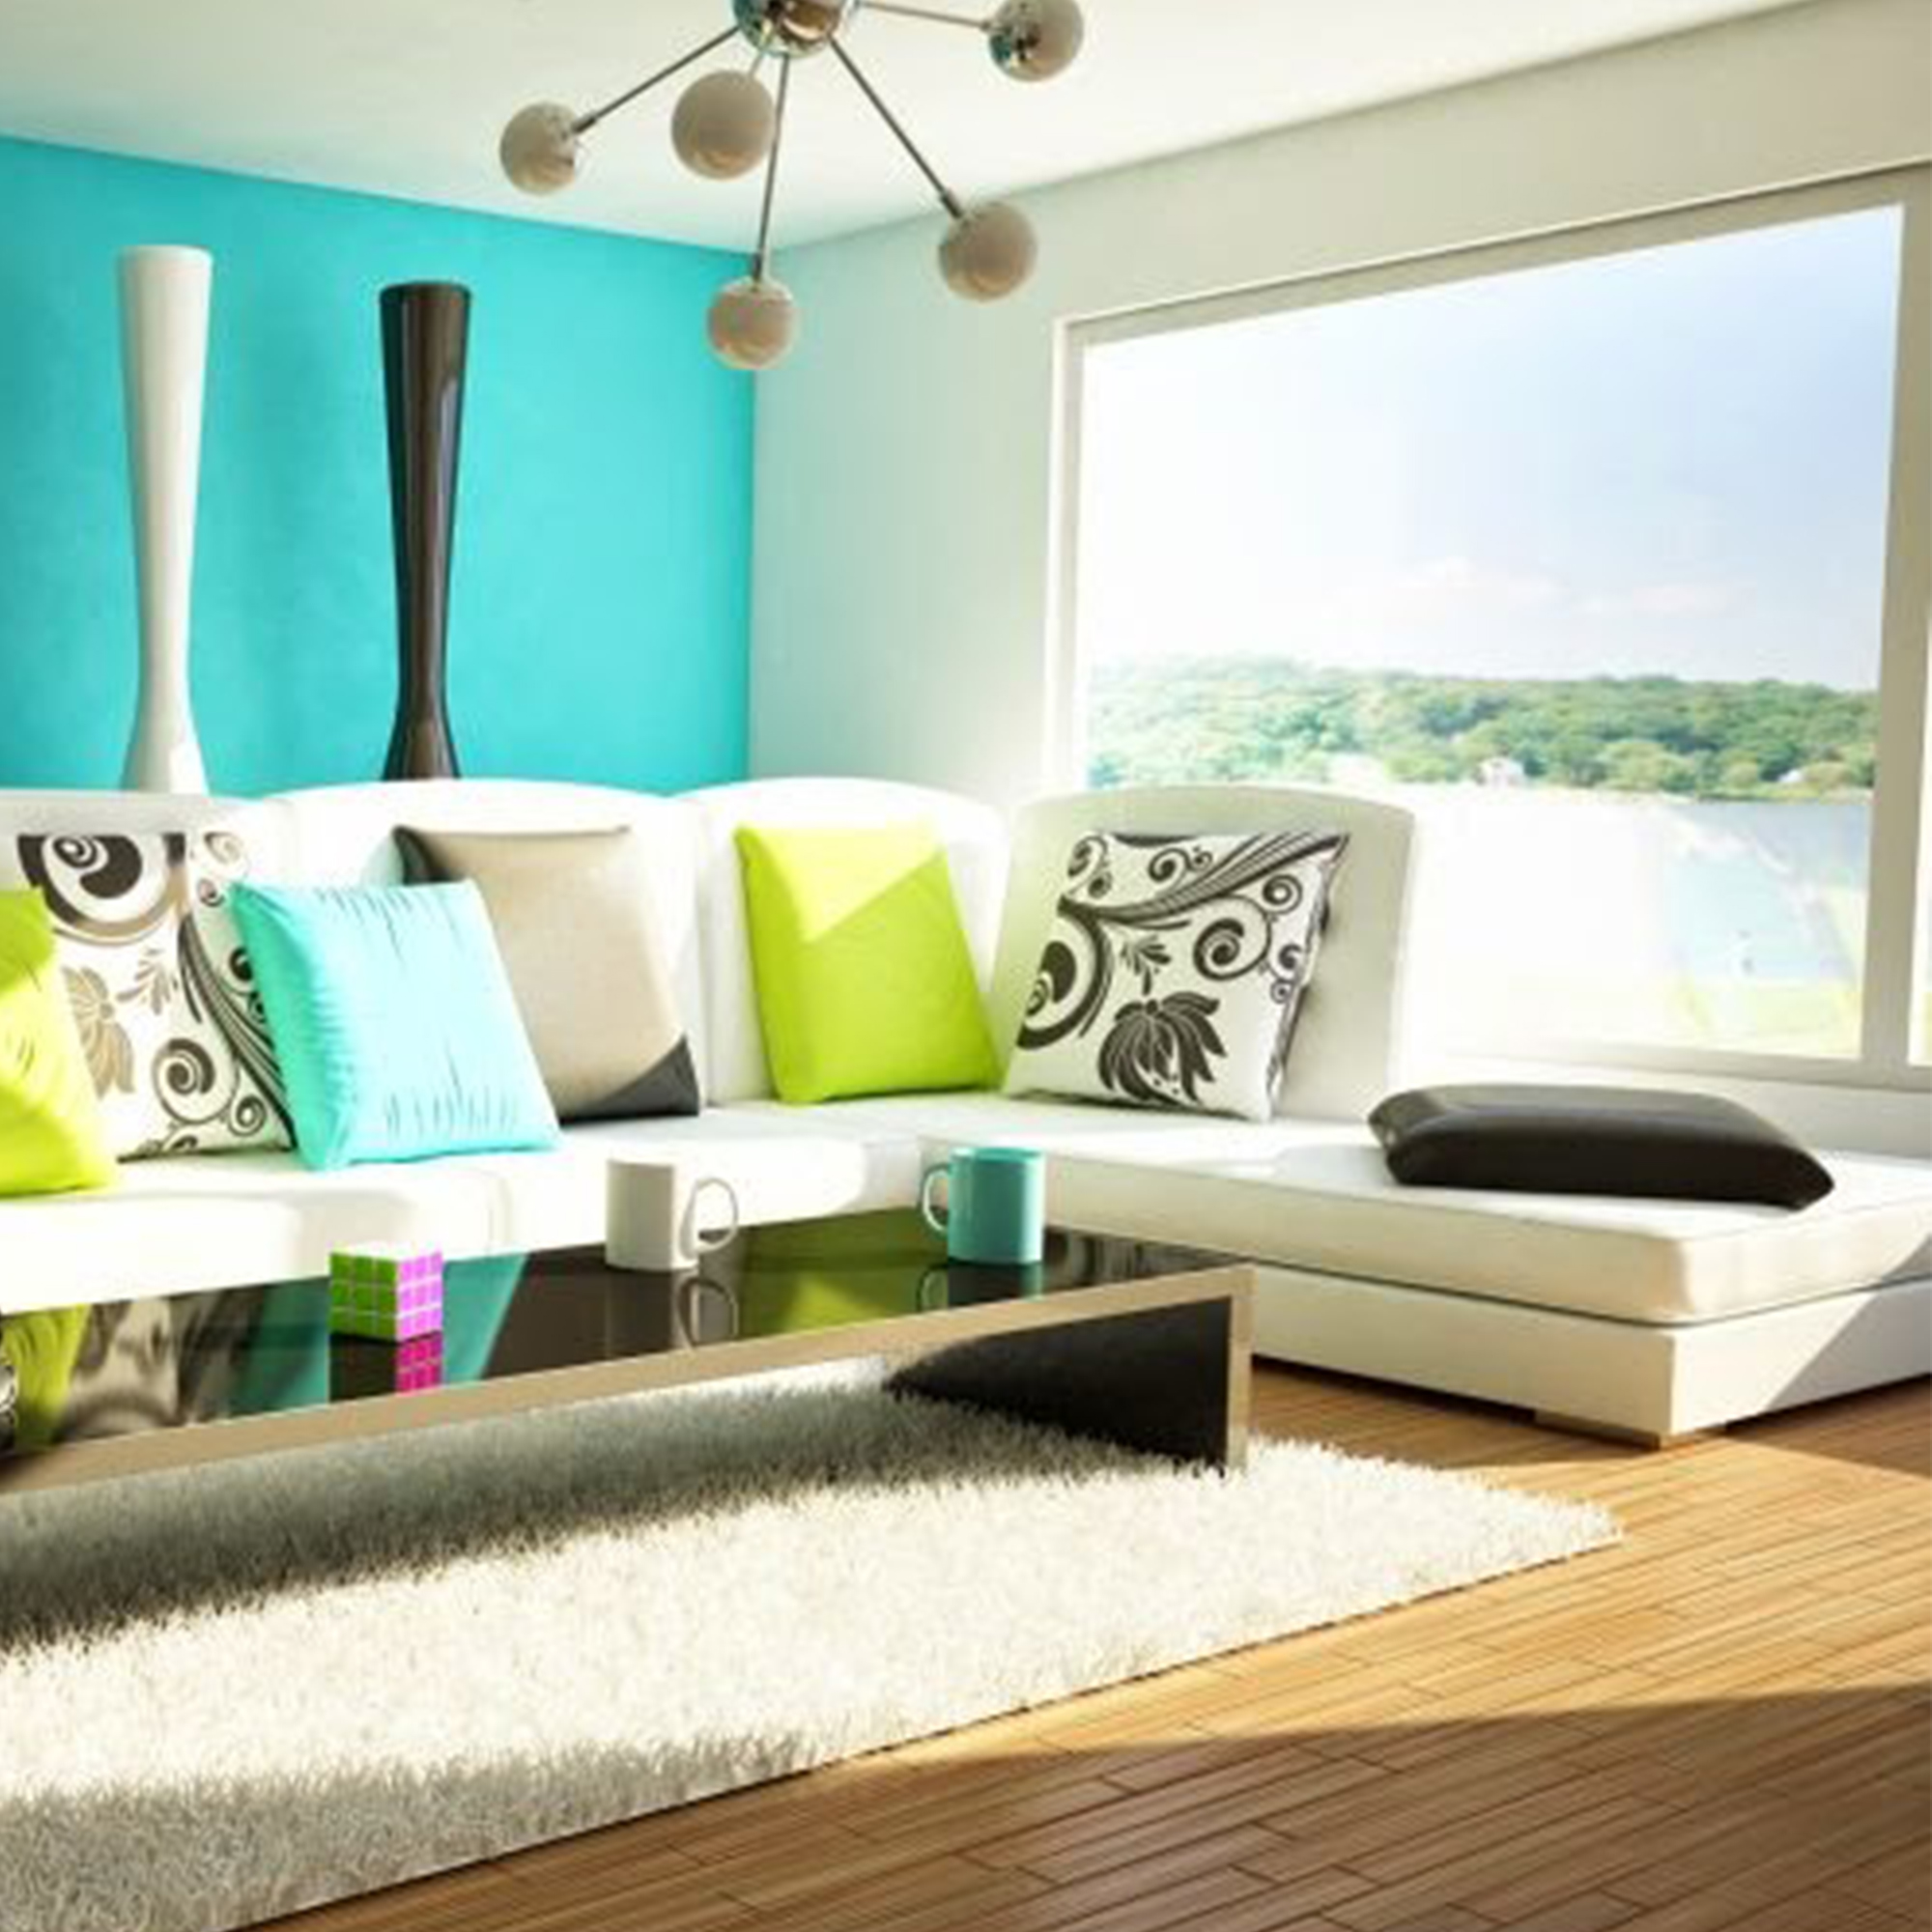 What Your Home's Design Says About Your Personality